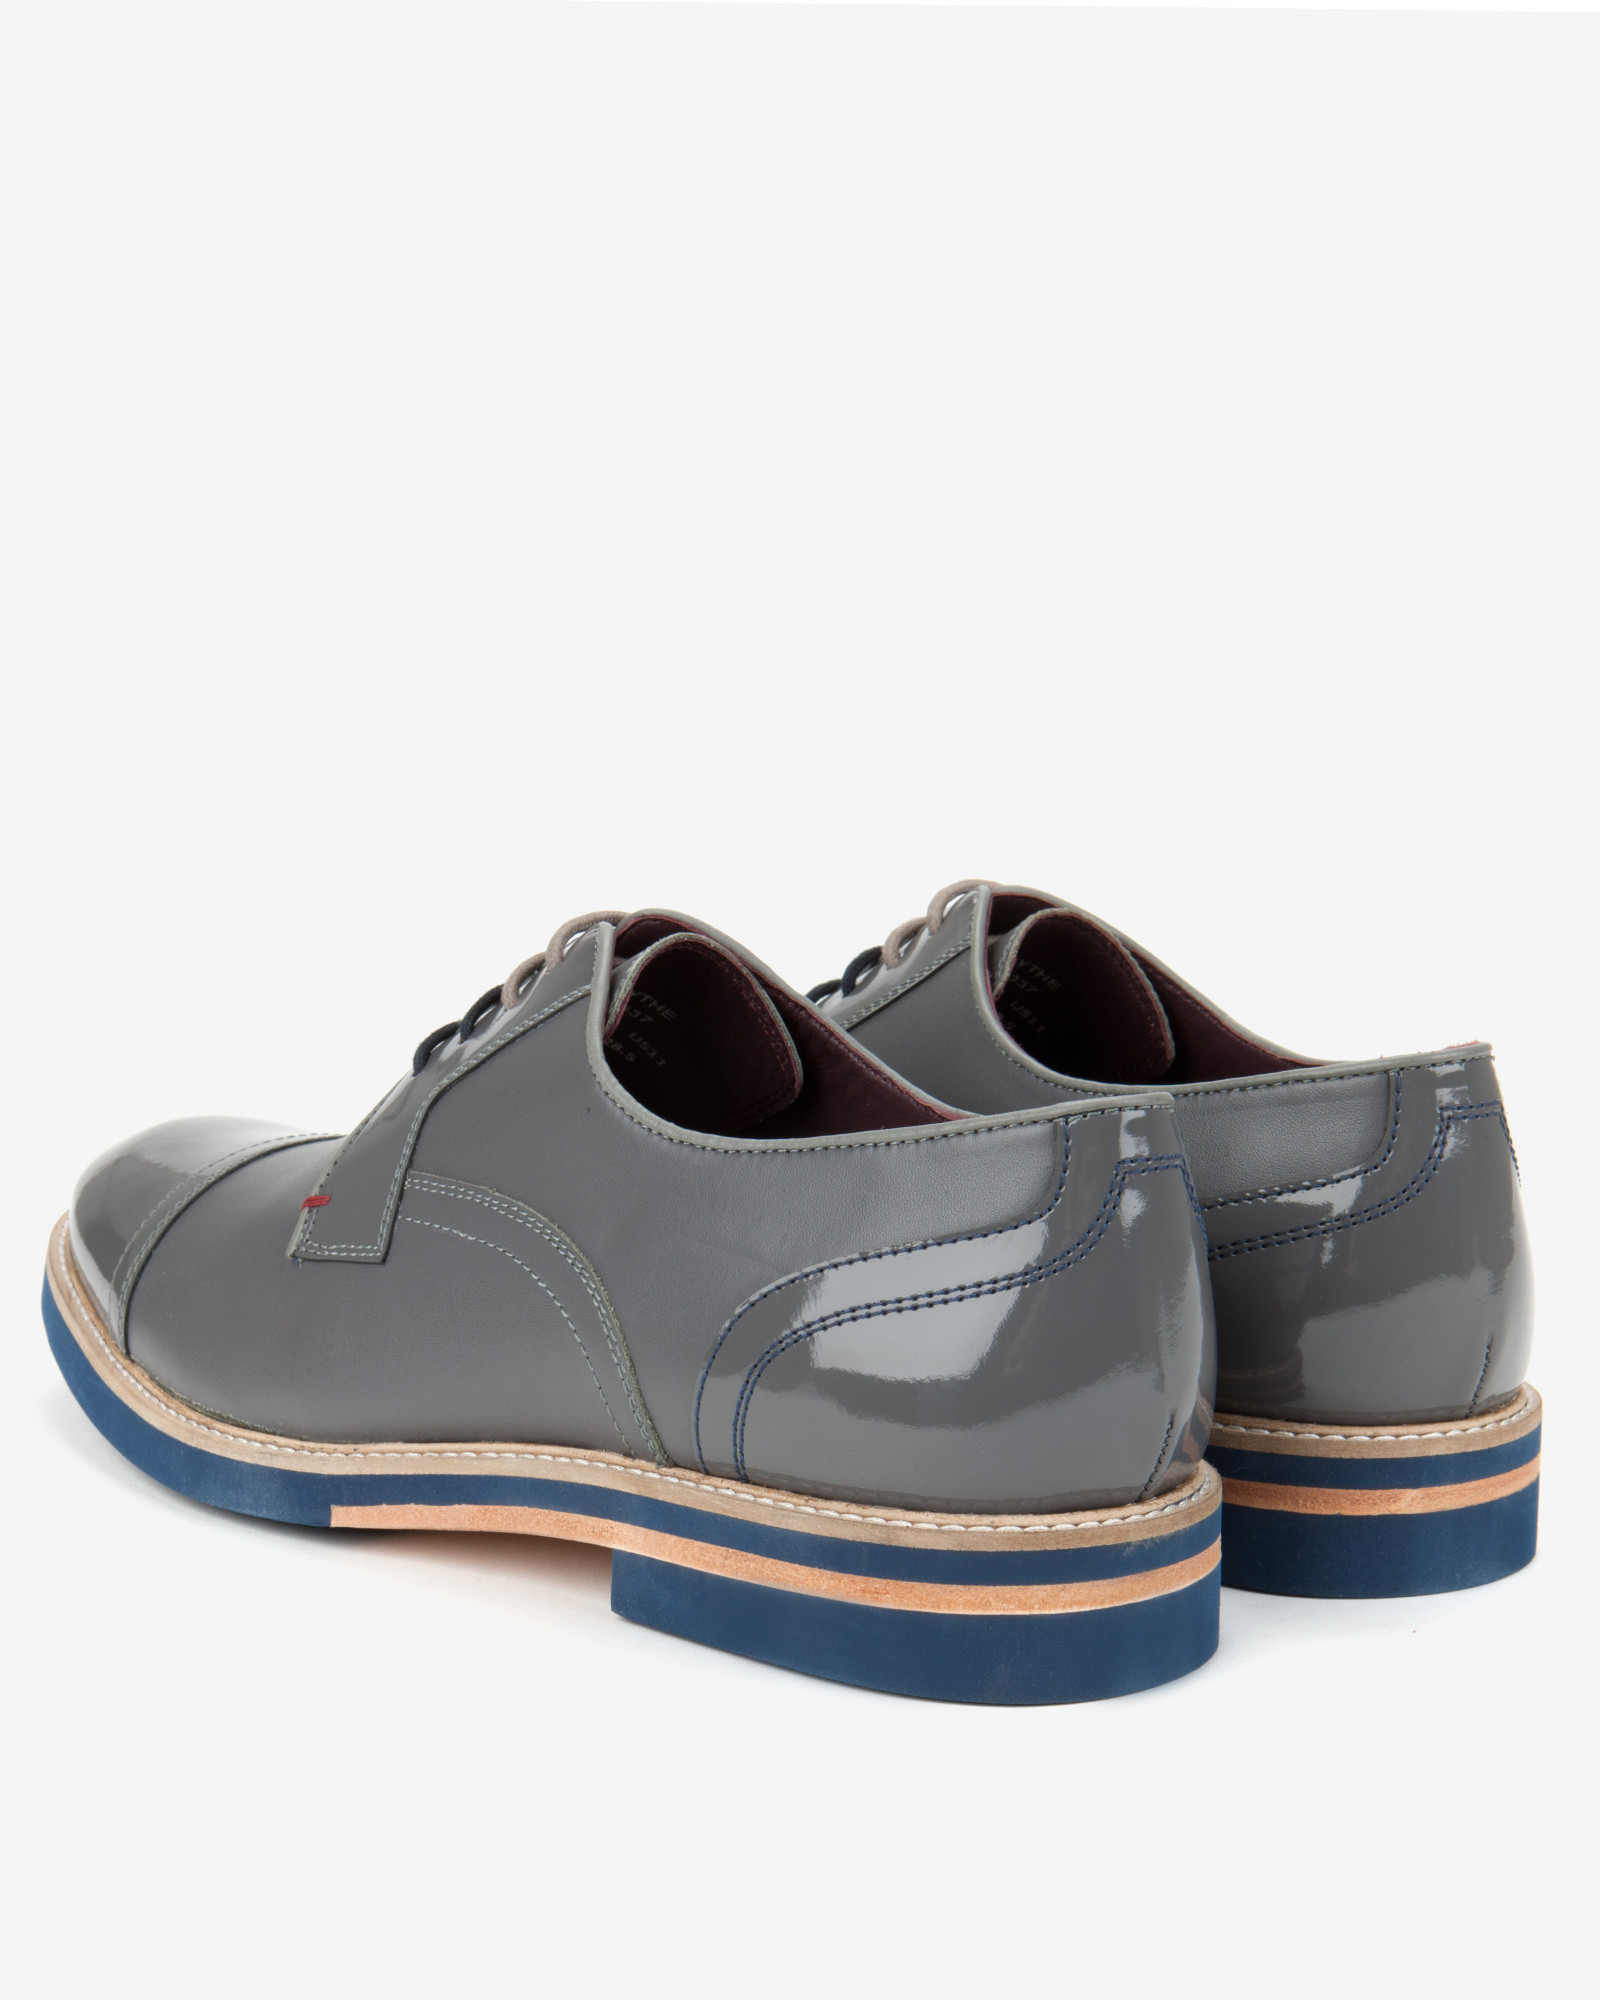 Braythe 2 Derby Shoes In Grey Leather - Grey Ted Baker Buy Cheap Recommend SnUENmUZ